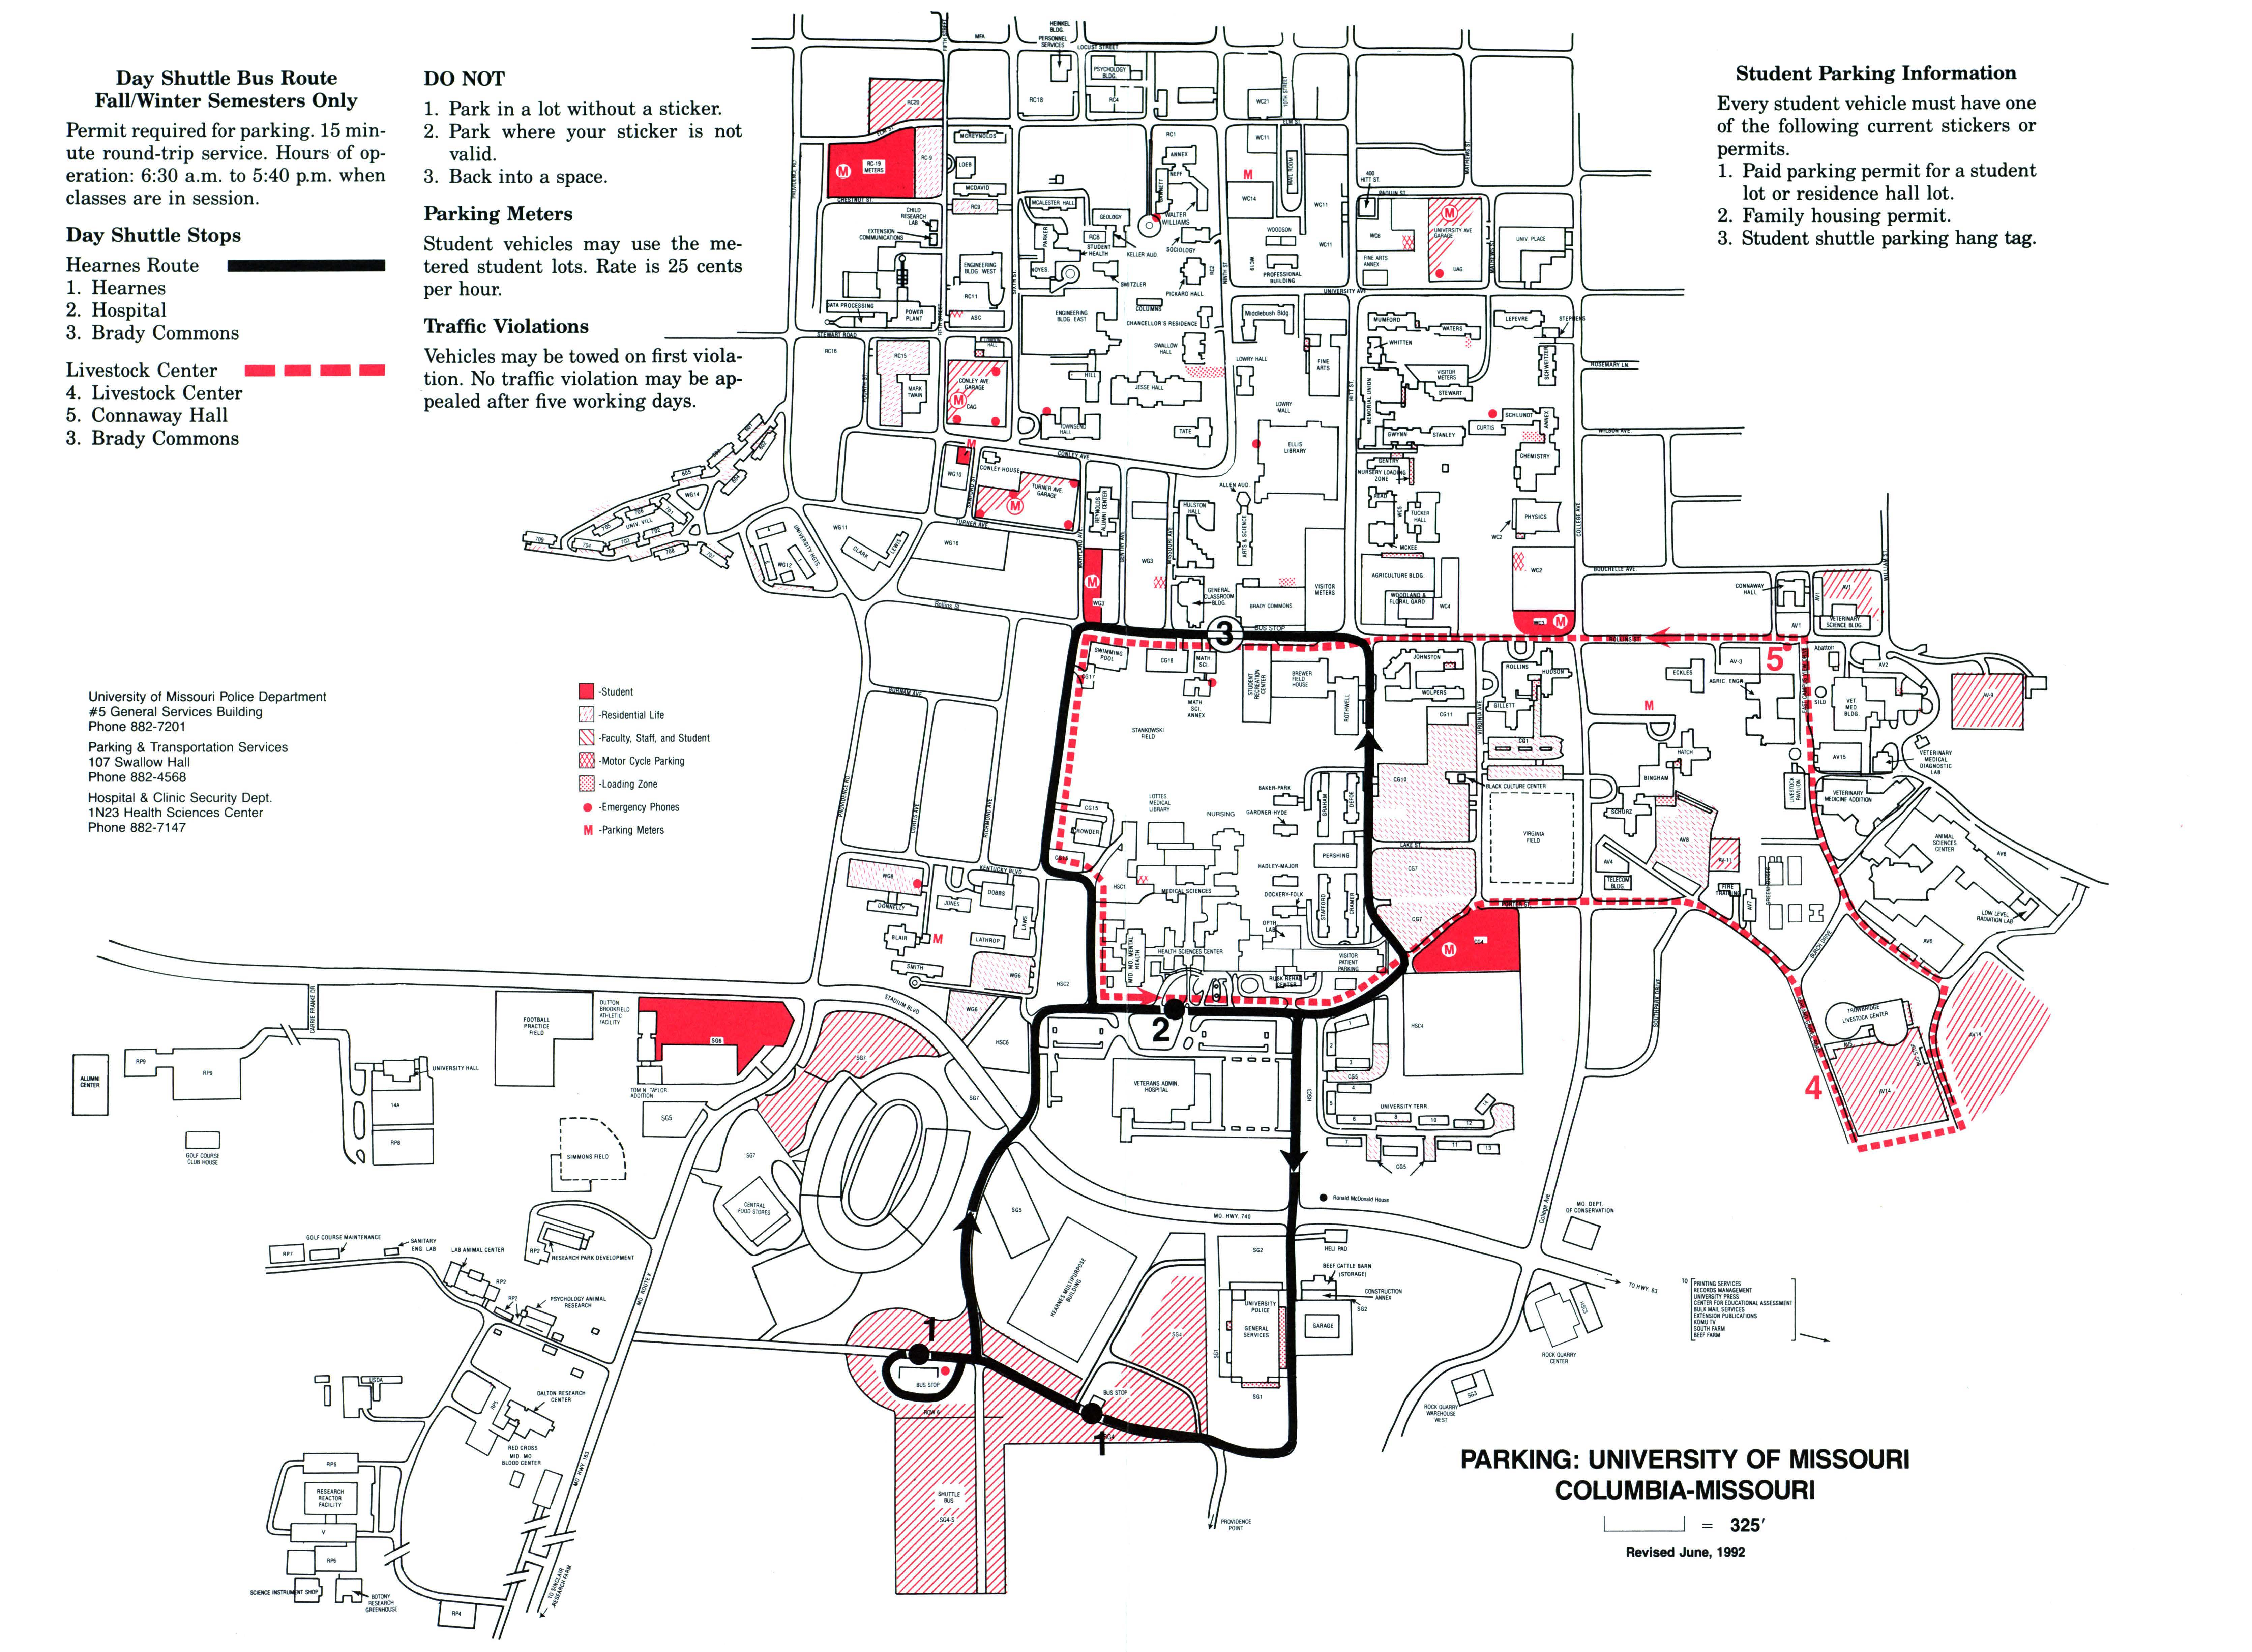 Day shuttle bus route : fall/winter semesters only